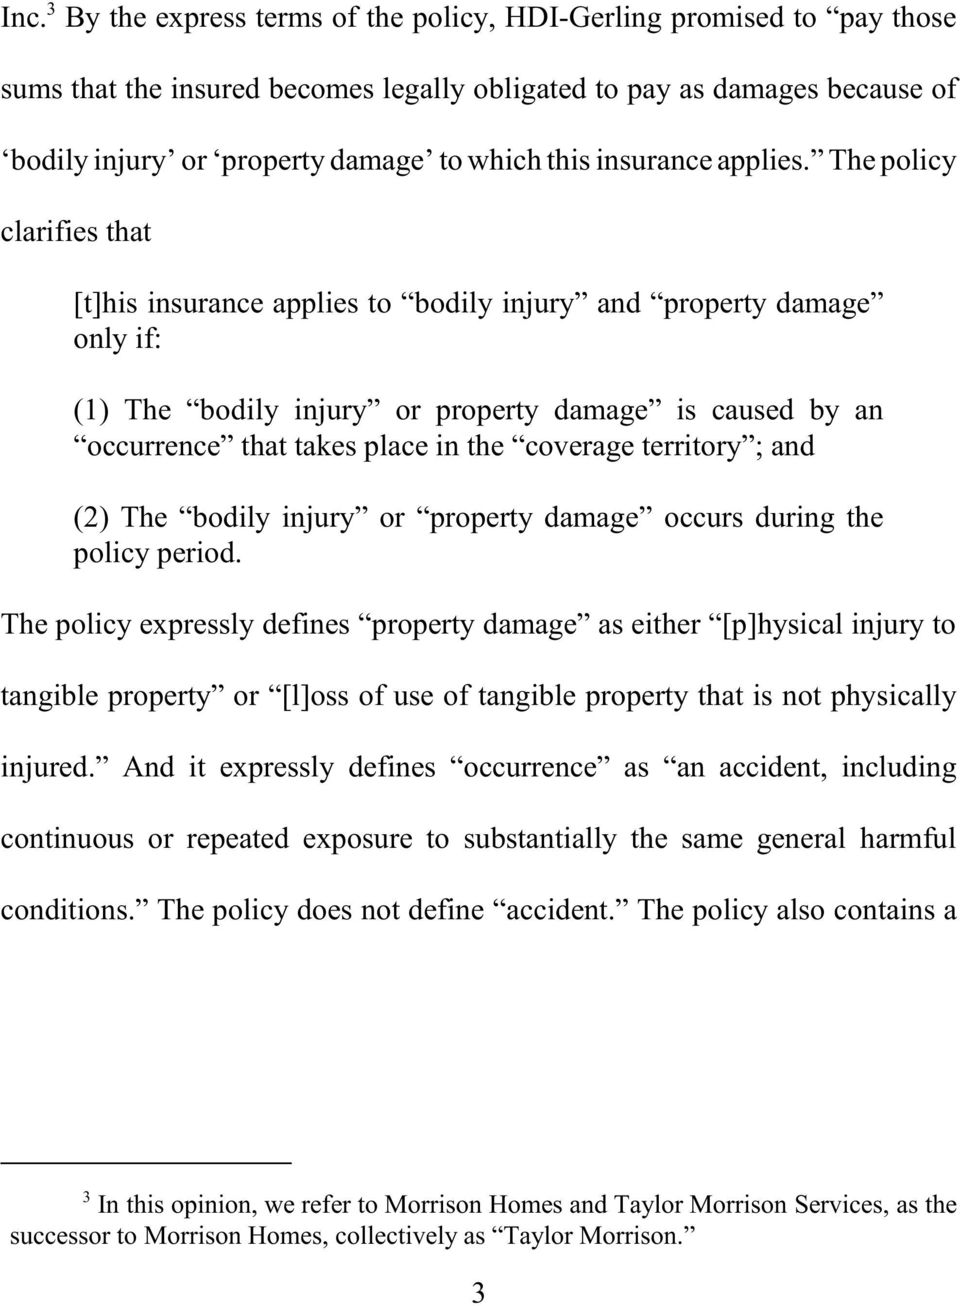 The policy clarifies that [t]his insurance applies to bodily injury and property damage only if: (1) The bodily injury or property damage is caused by an occurrence that takes place in the coverage